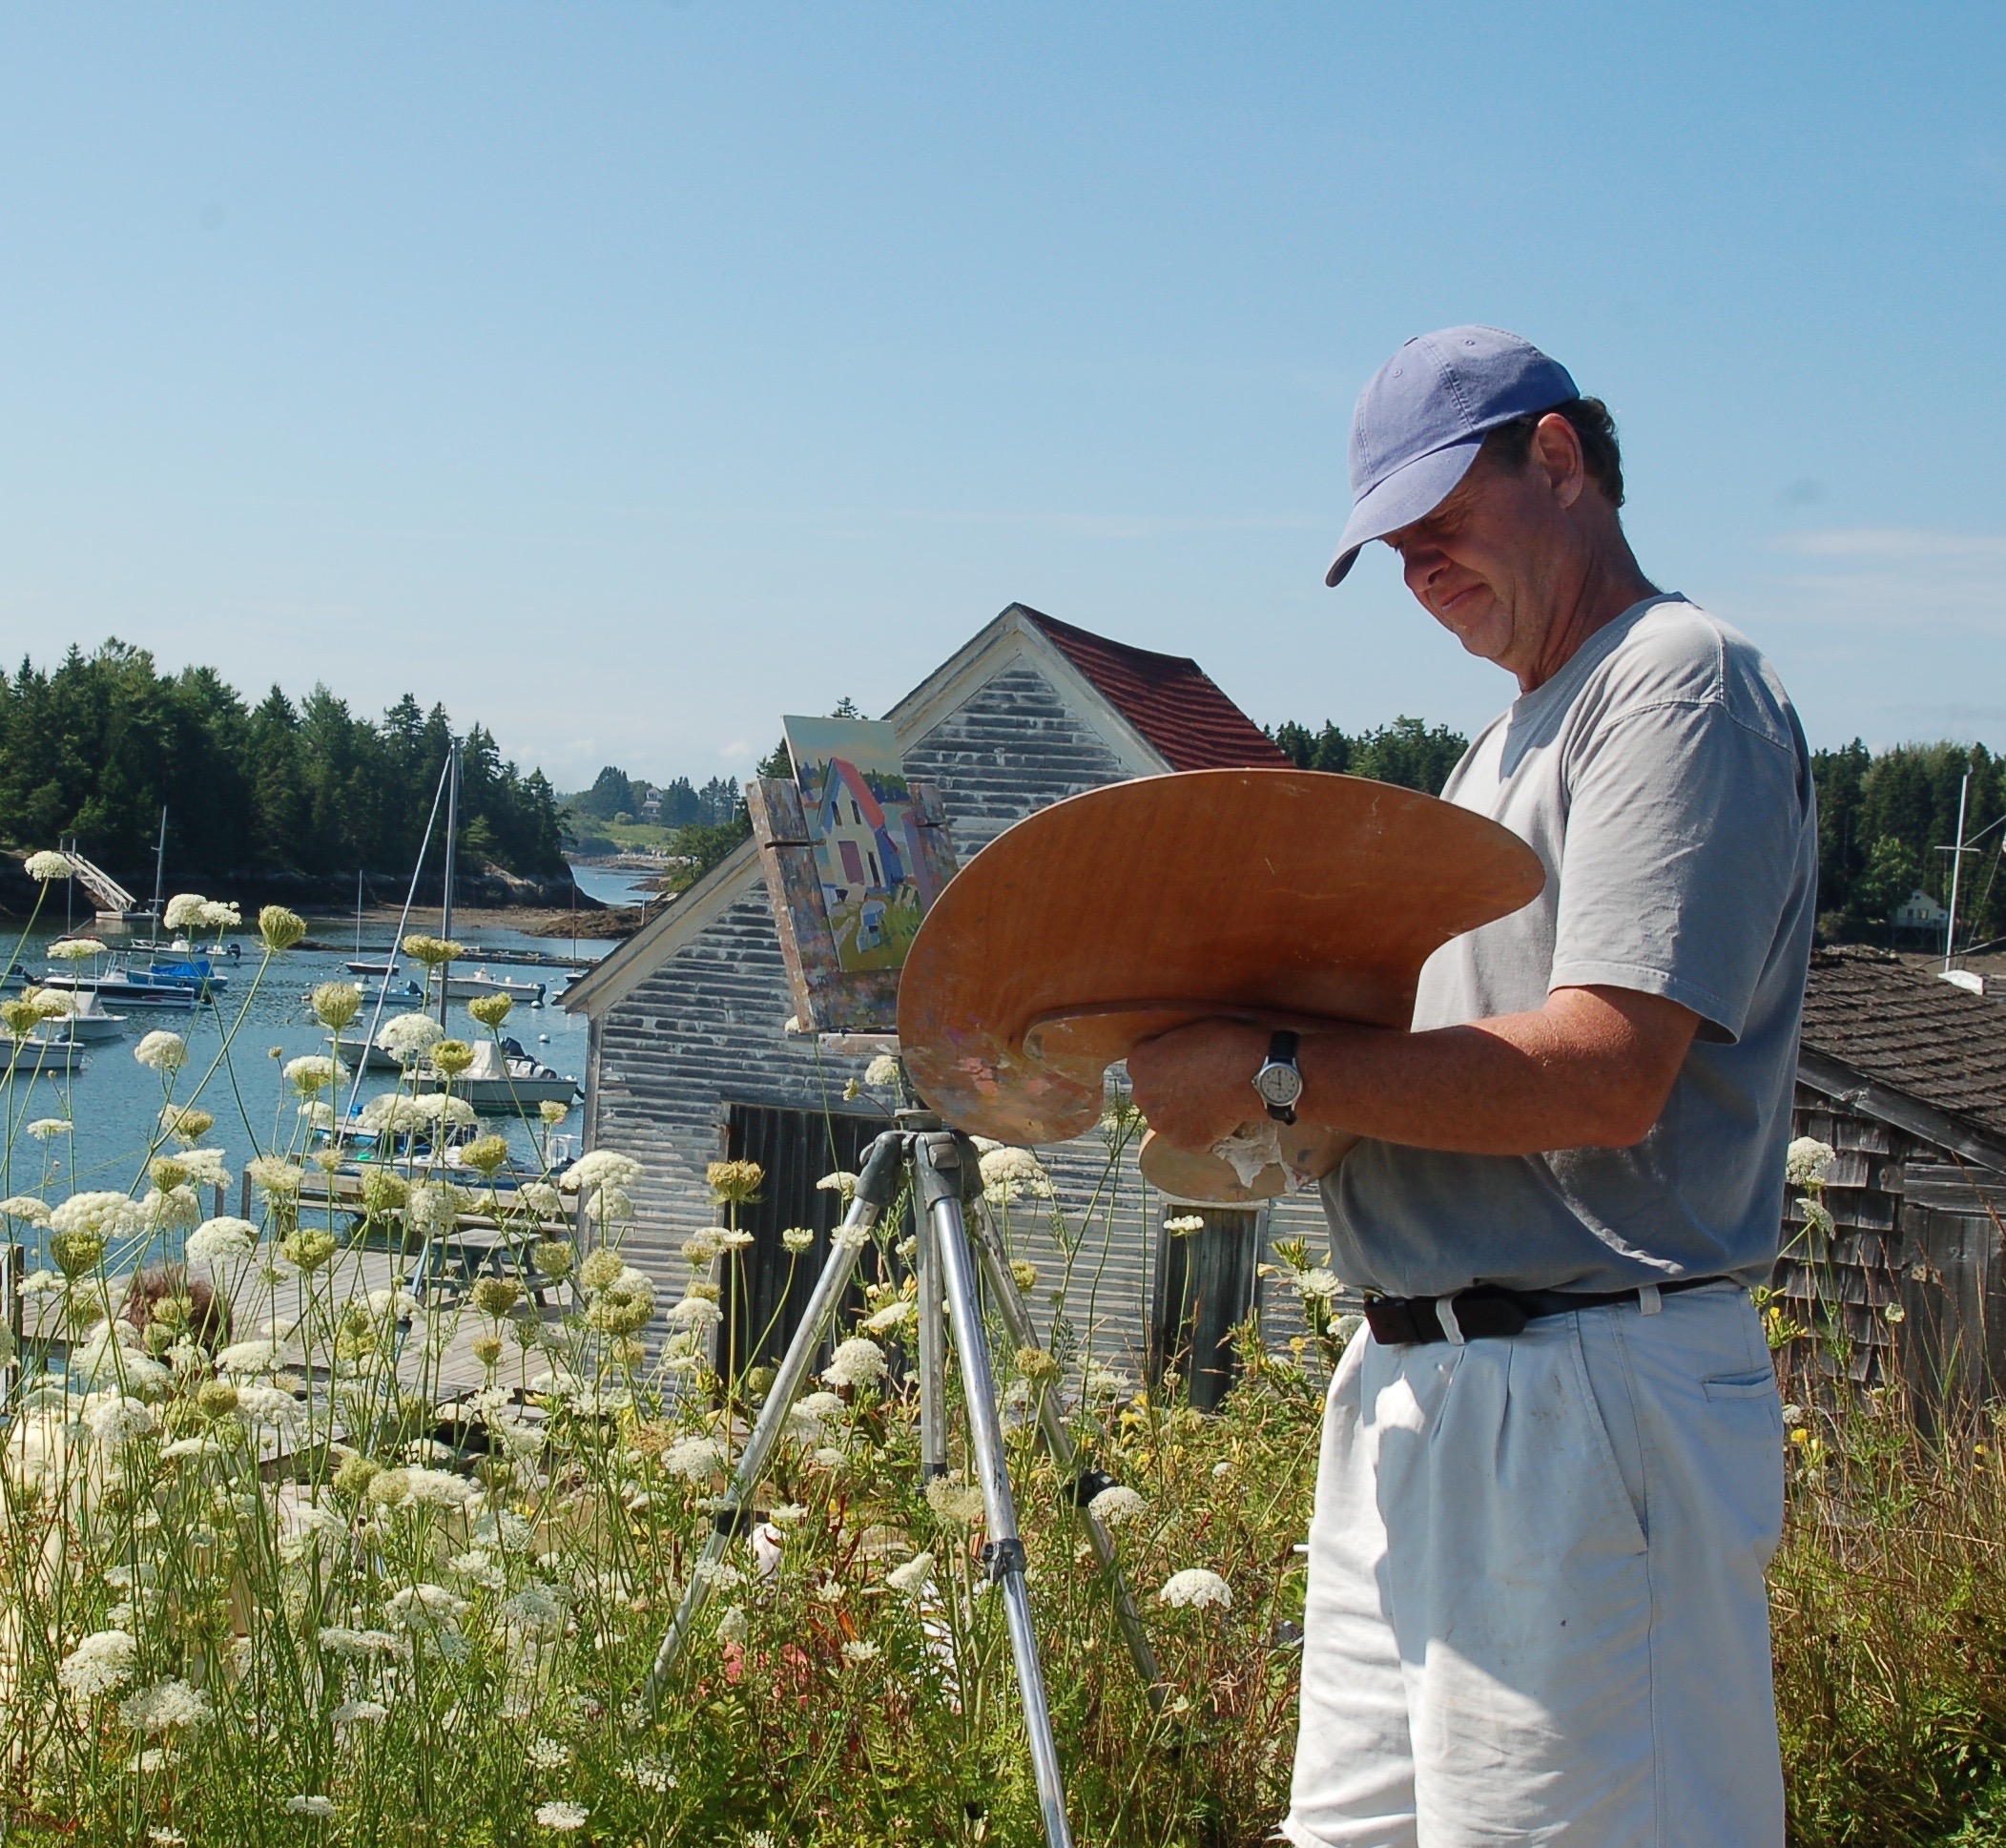 Lee painting on Southport Island, Maine